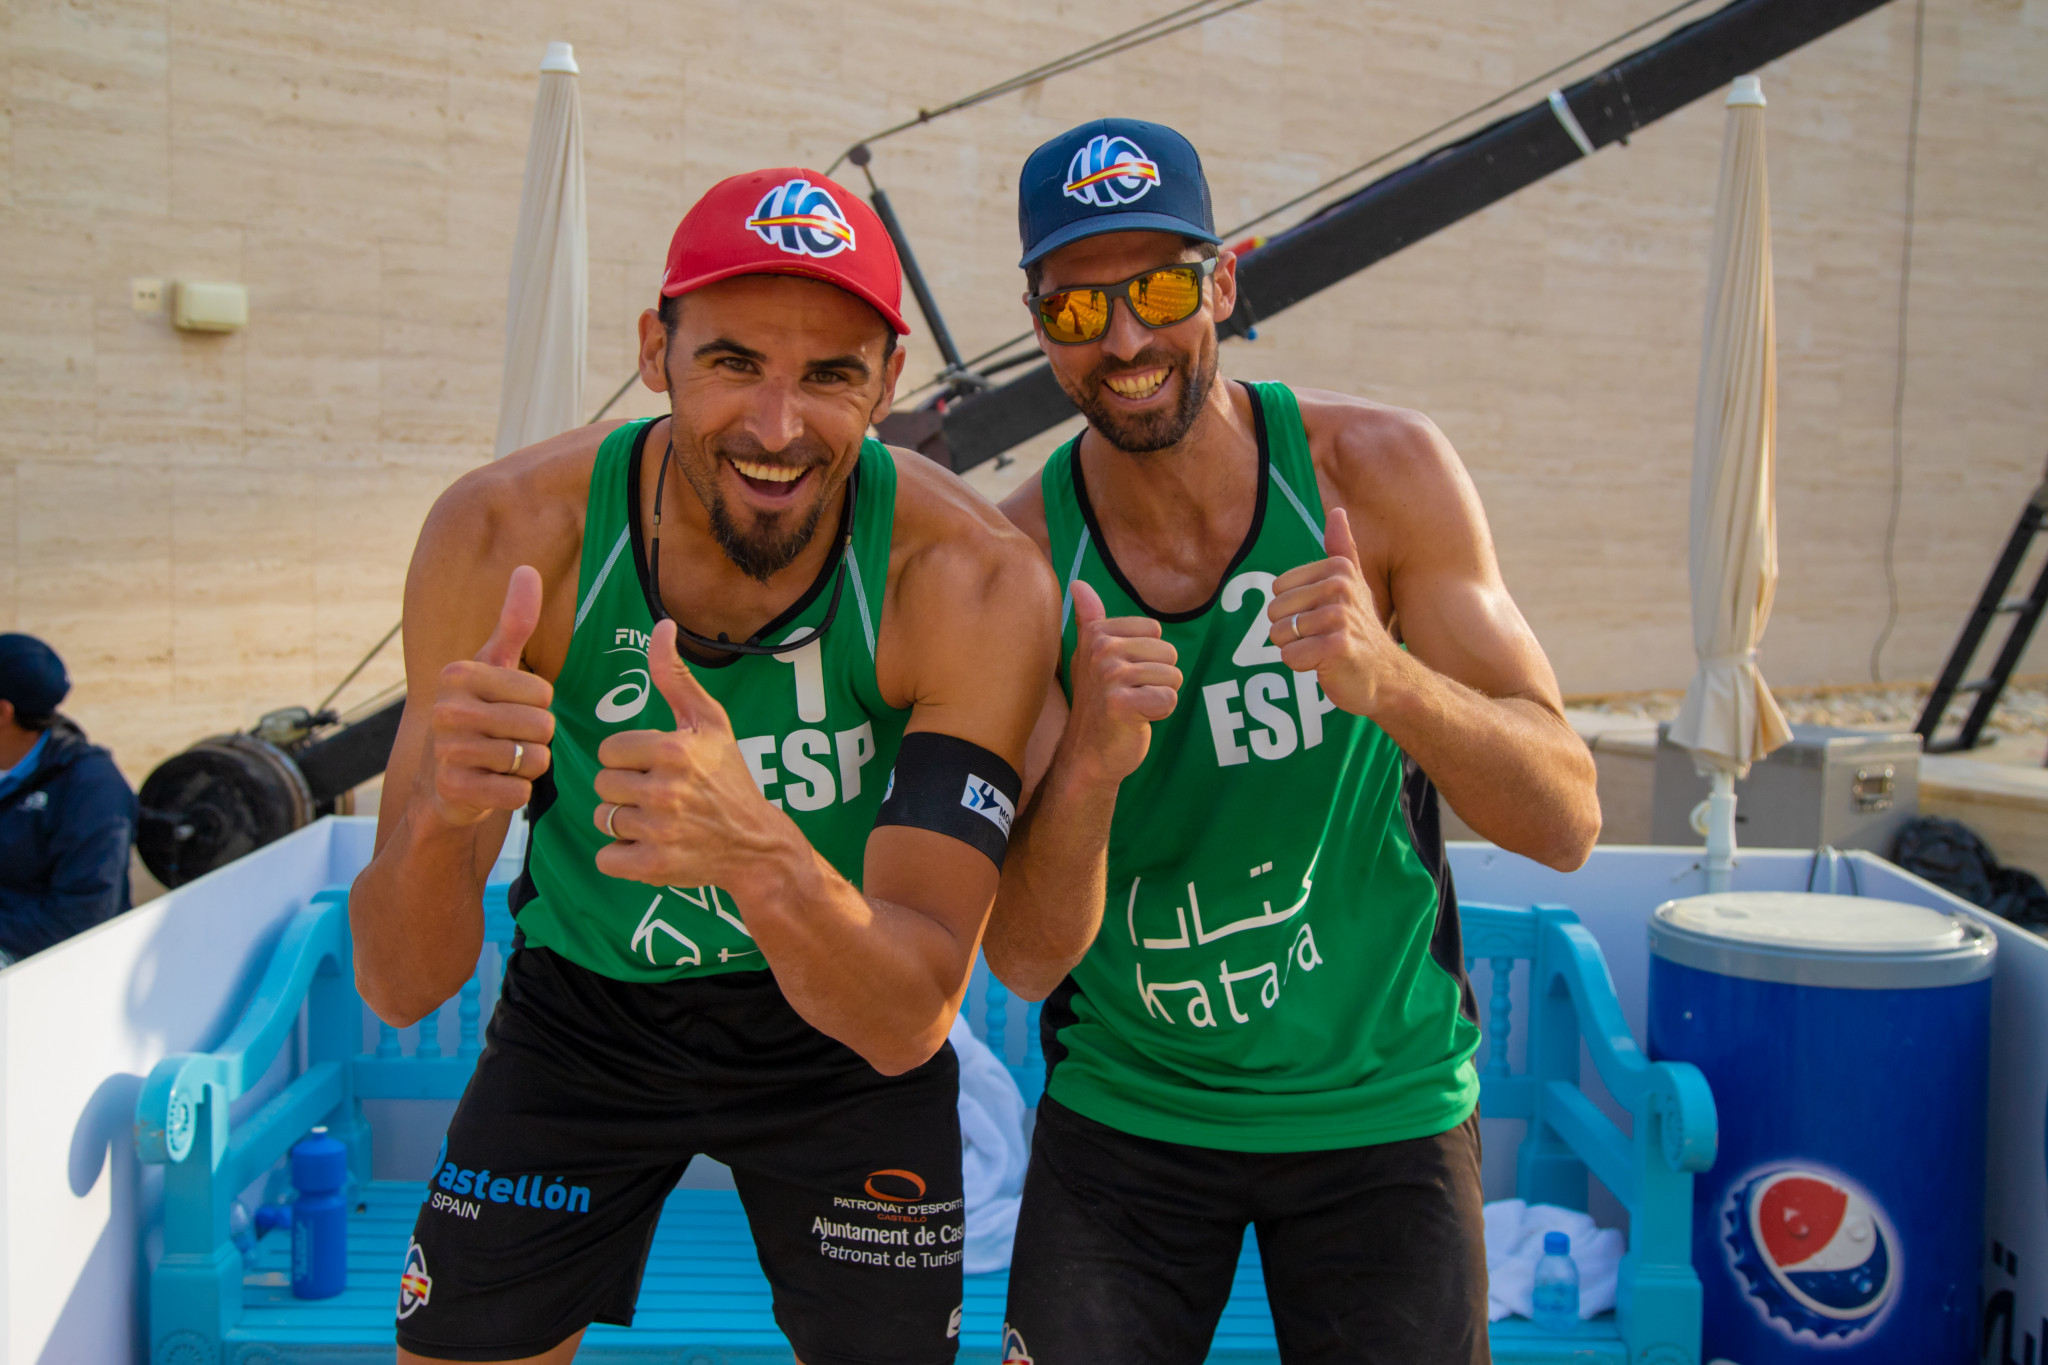 Spain's Pablo Herrera and Adrian Gavira have reached the quarter-finals at the FIVB Beach Volleyball World Tour event in Doha ©FIVB